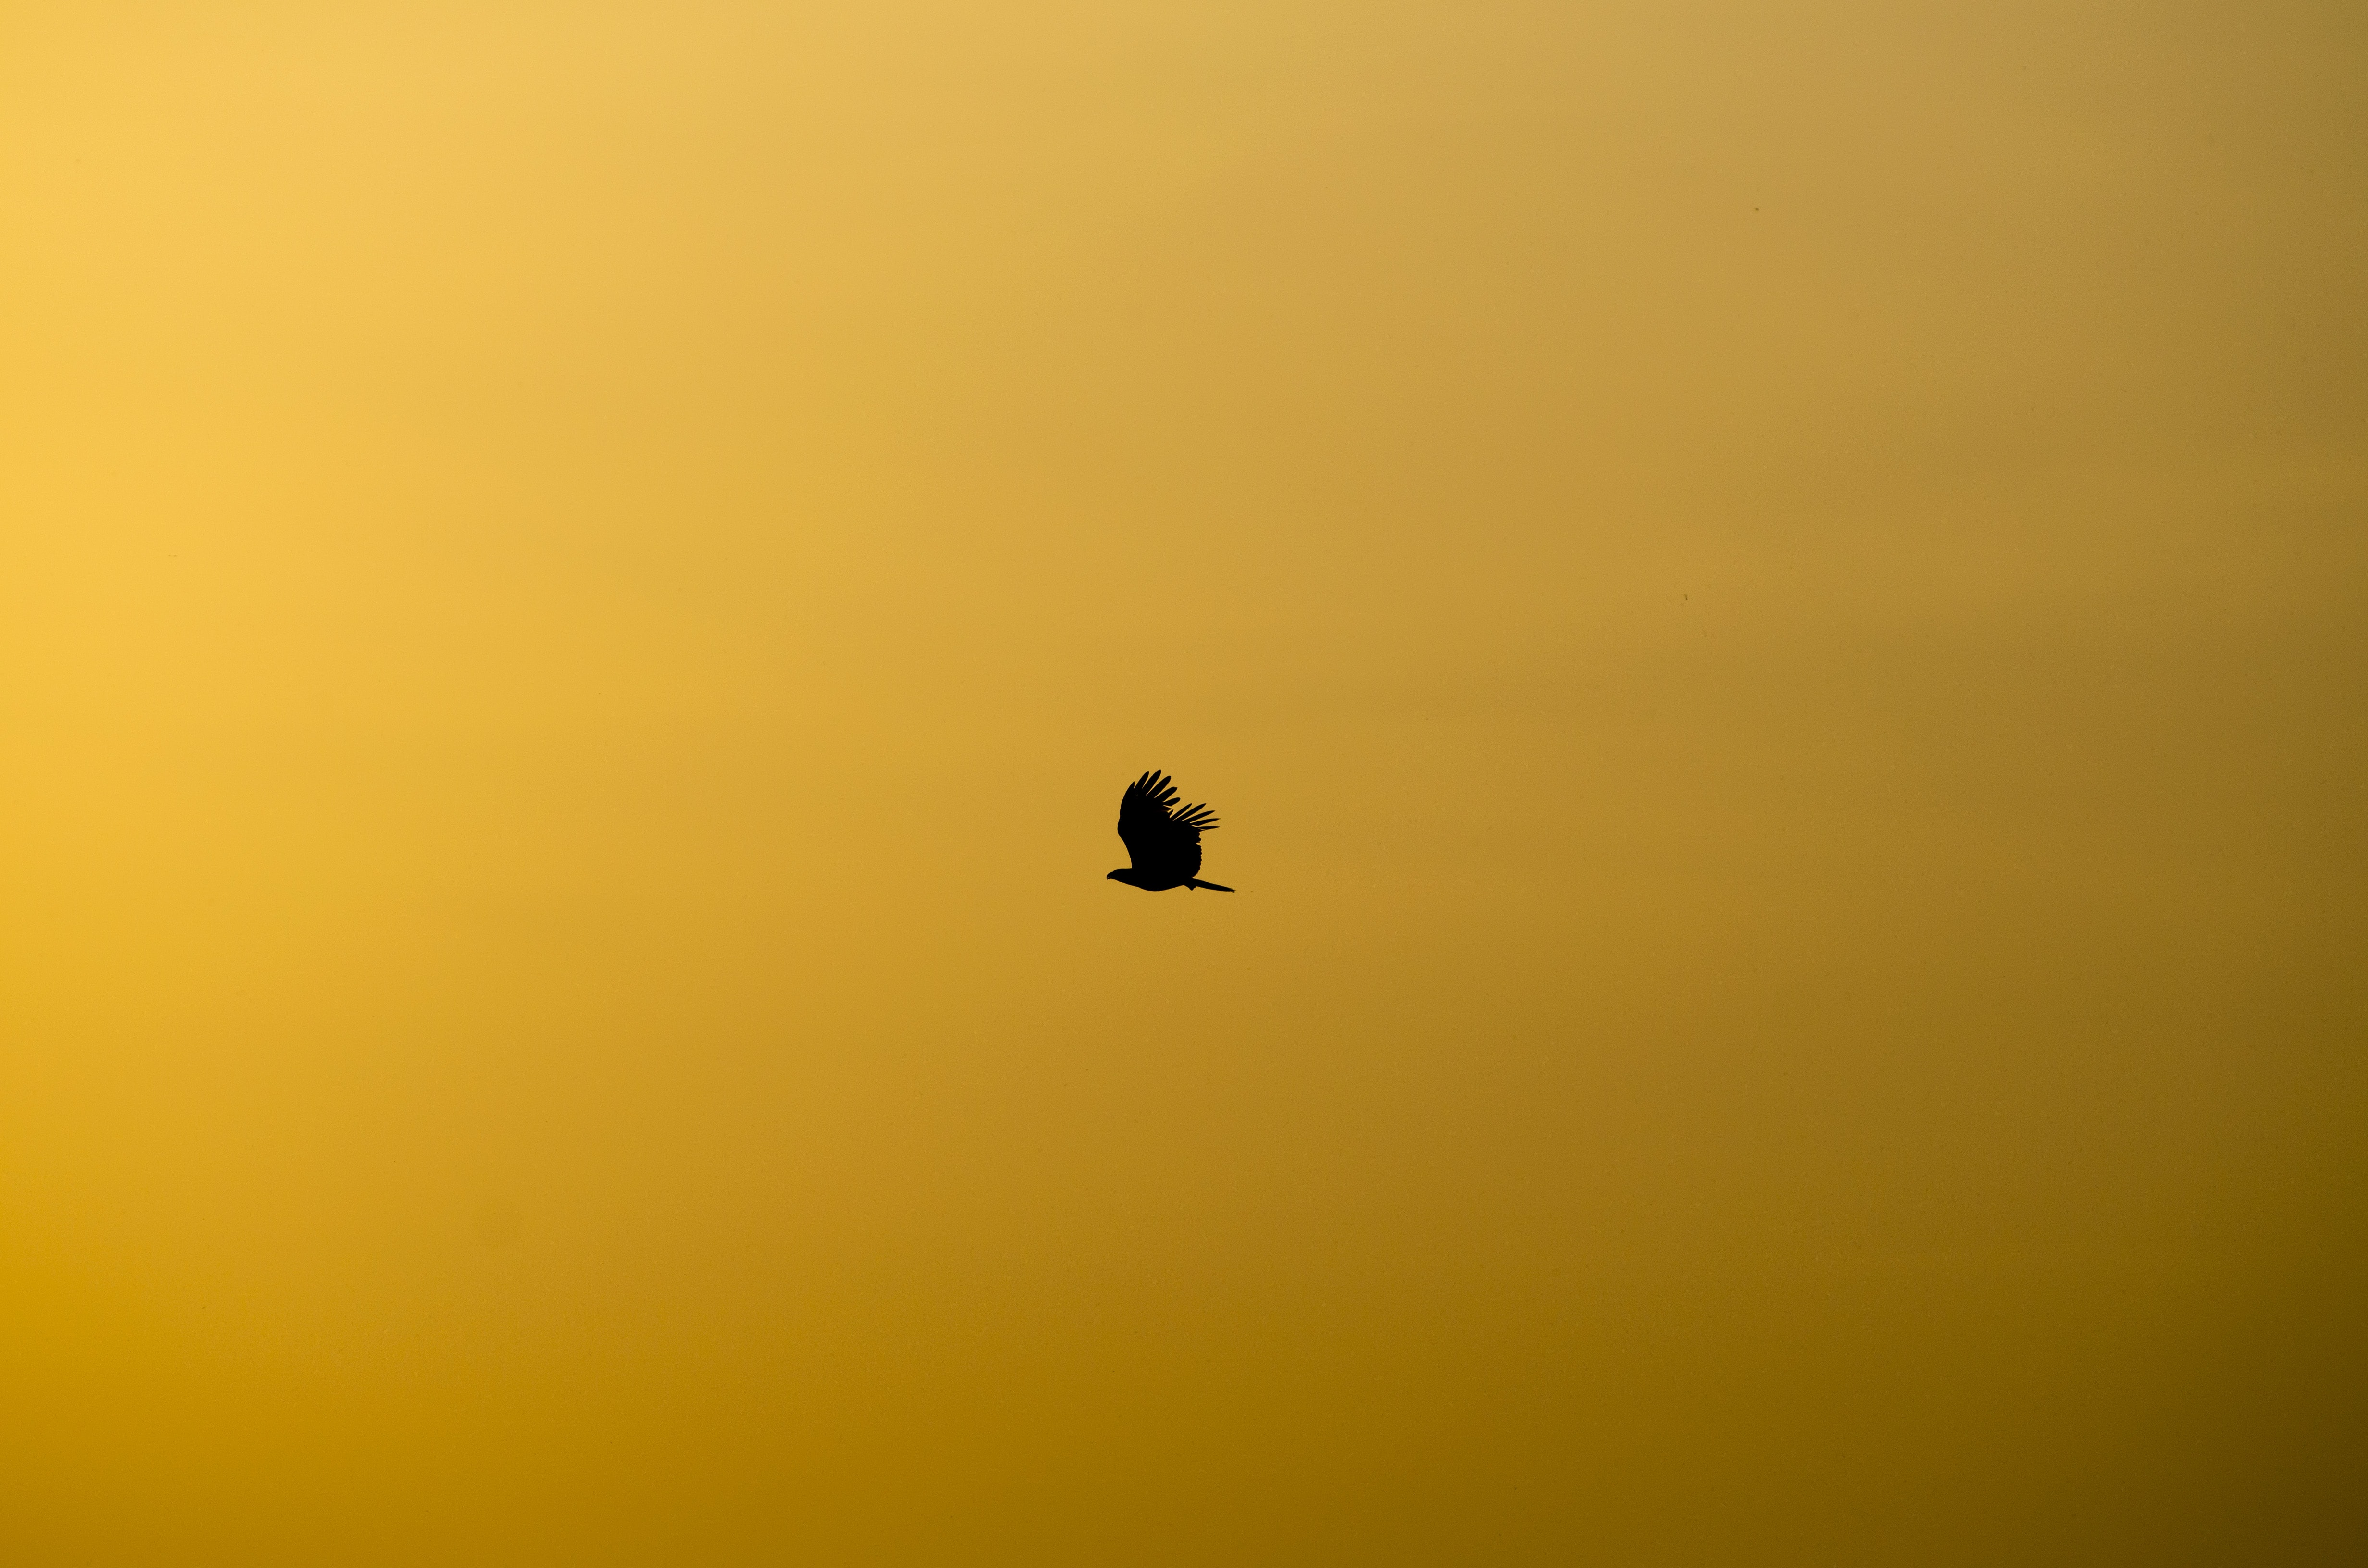 The silhouette of a bird flying through a yellow sky in Bengaluru